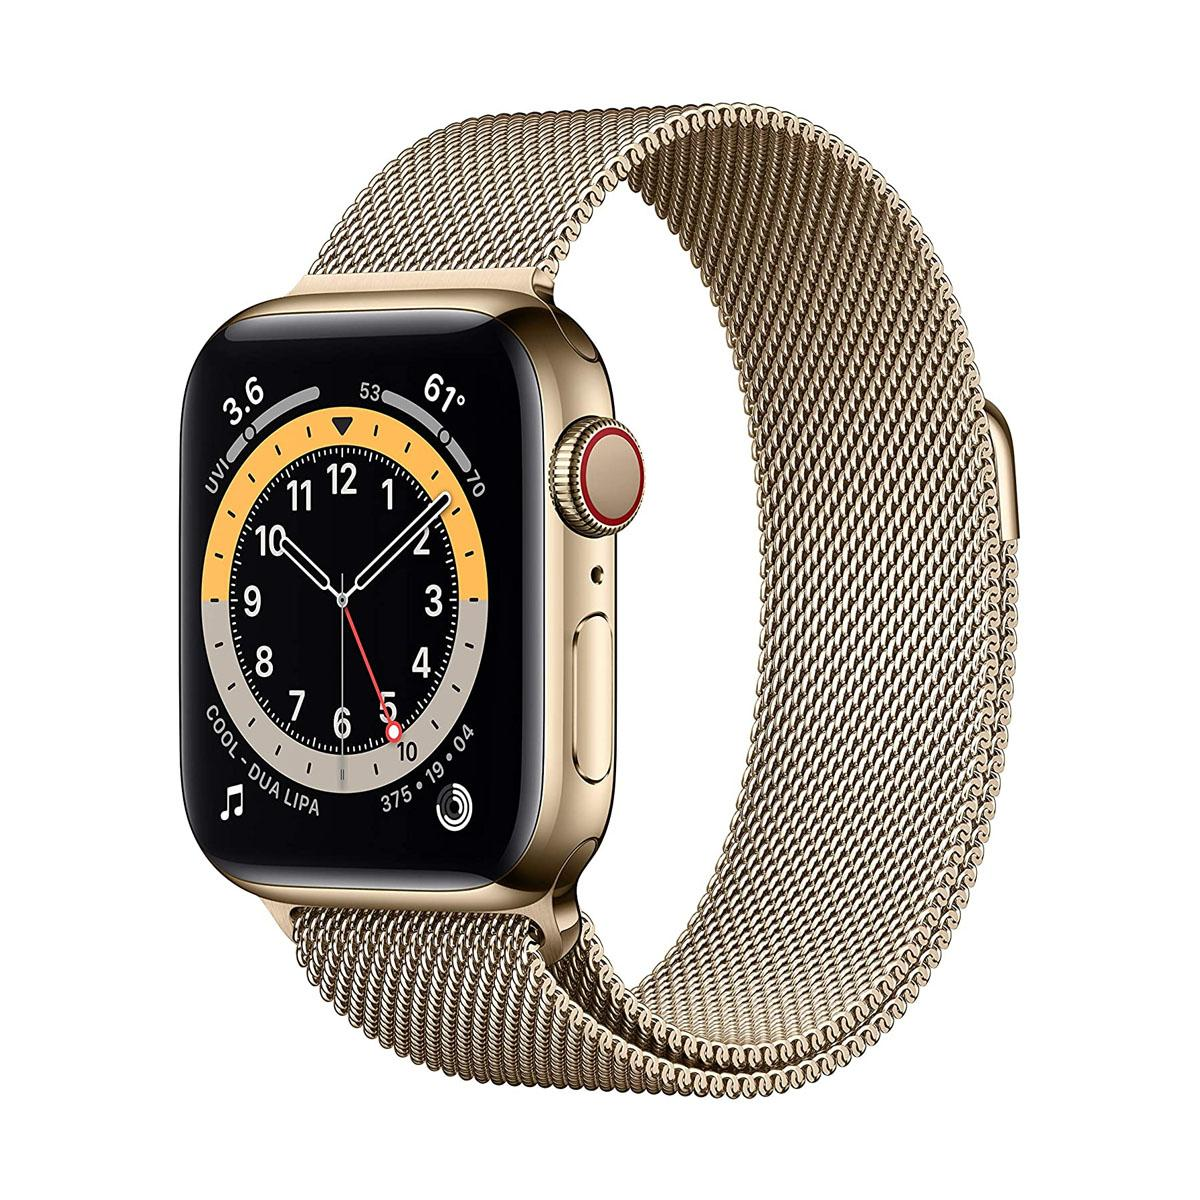 Apple Watch Series 6 (GPS + Cellular 44mm Stainless Steel Case with Gold Milanese Loop) Gold